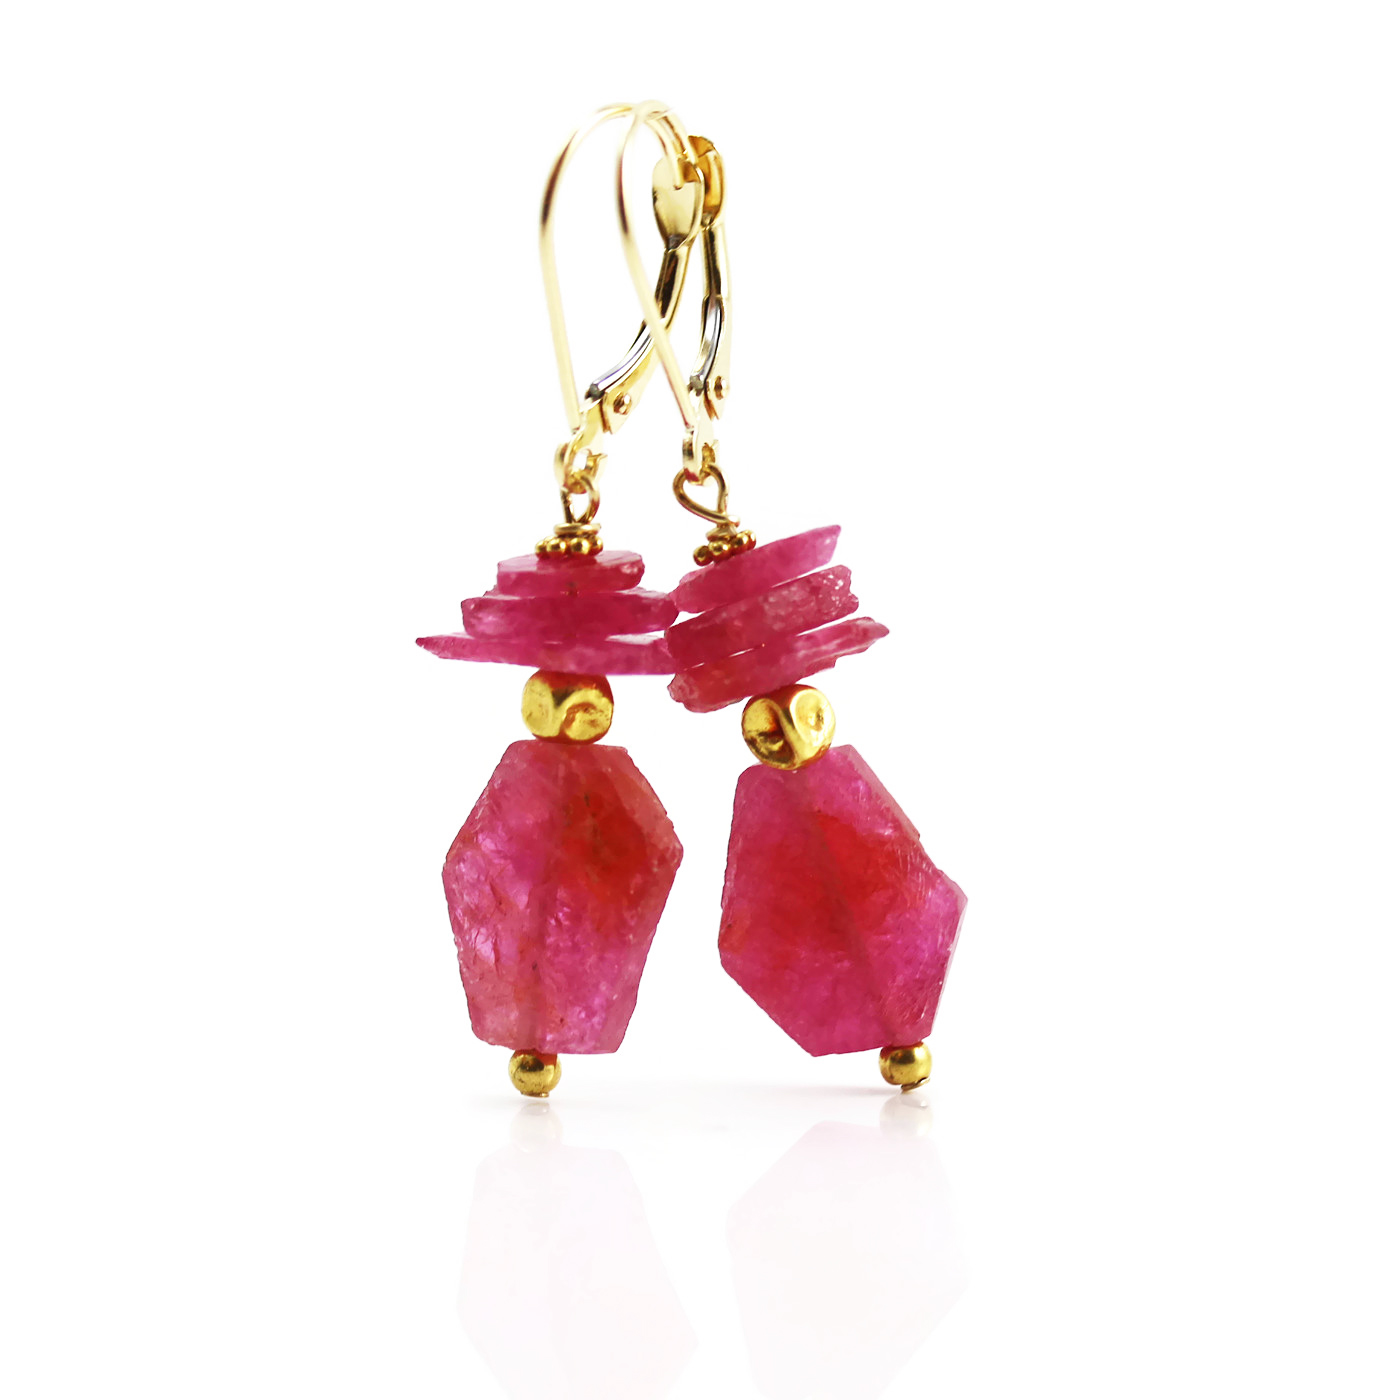 j jewelry c s created sterling color earrings gemstone ruby shop diamond silver jewellery